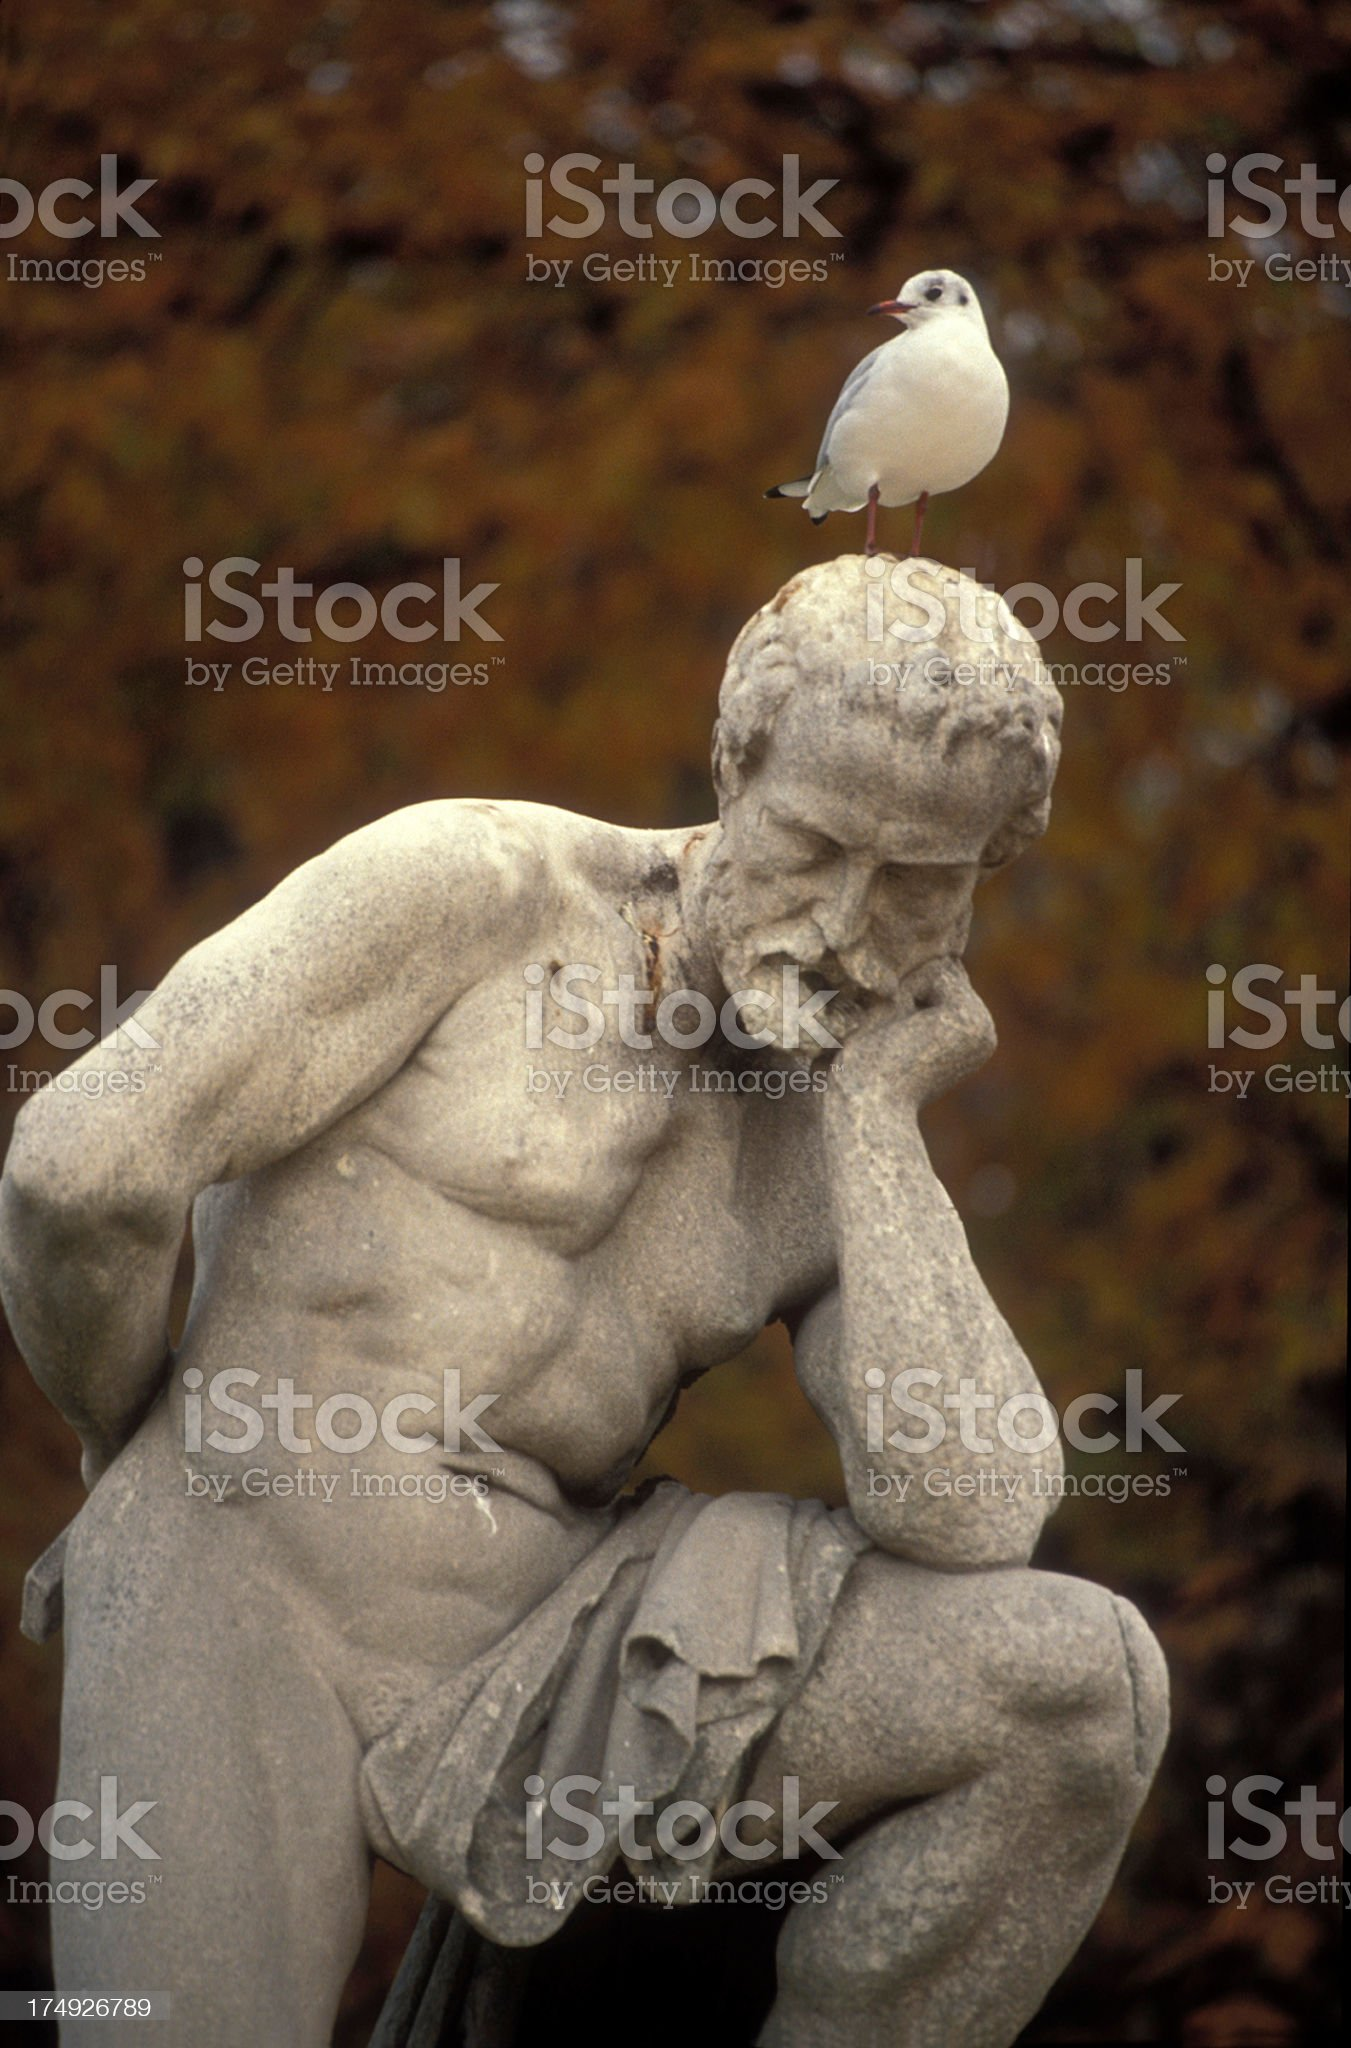 A statue of an old man thinking with a bird on his head royalty-free stock photo